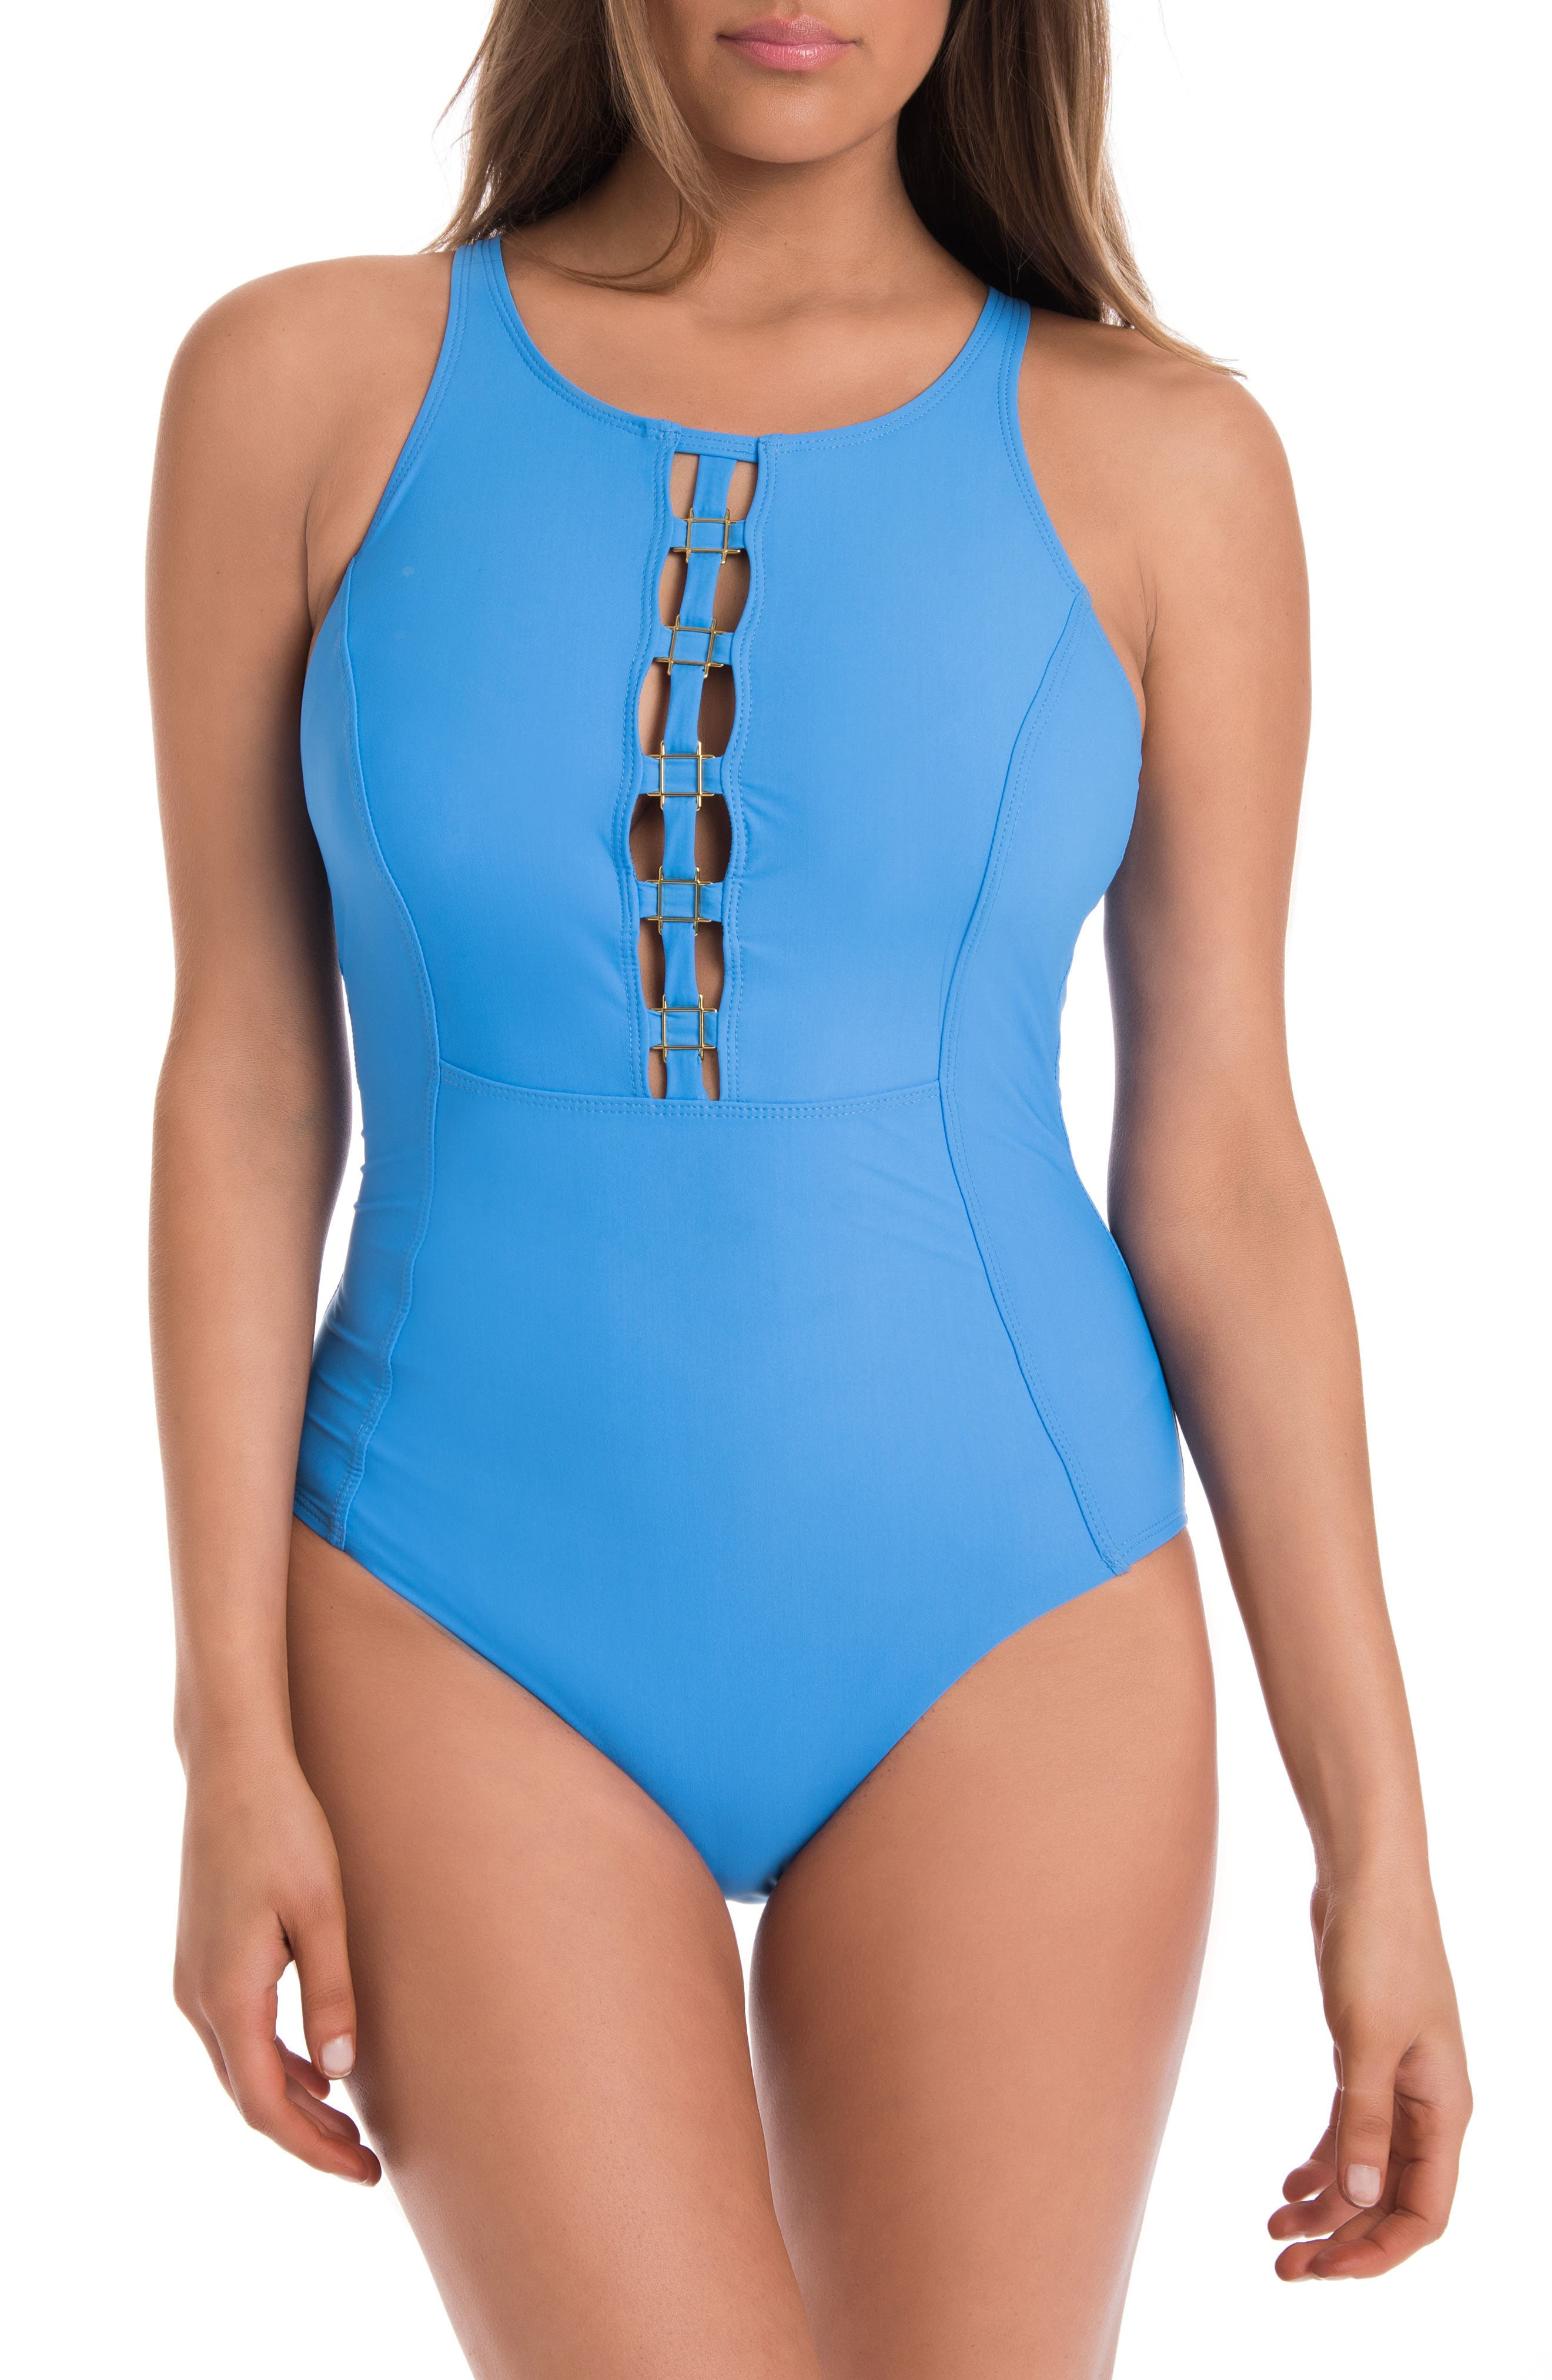 You Only Live Twice Sonder One-Piece Swimsuit,                         Main,                         color, Pool Blue